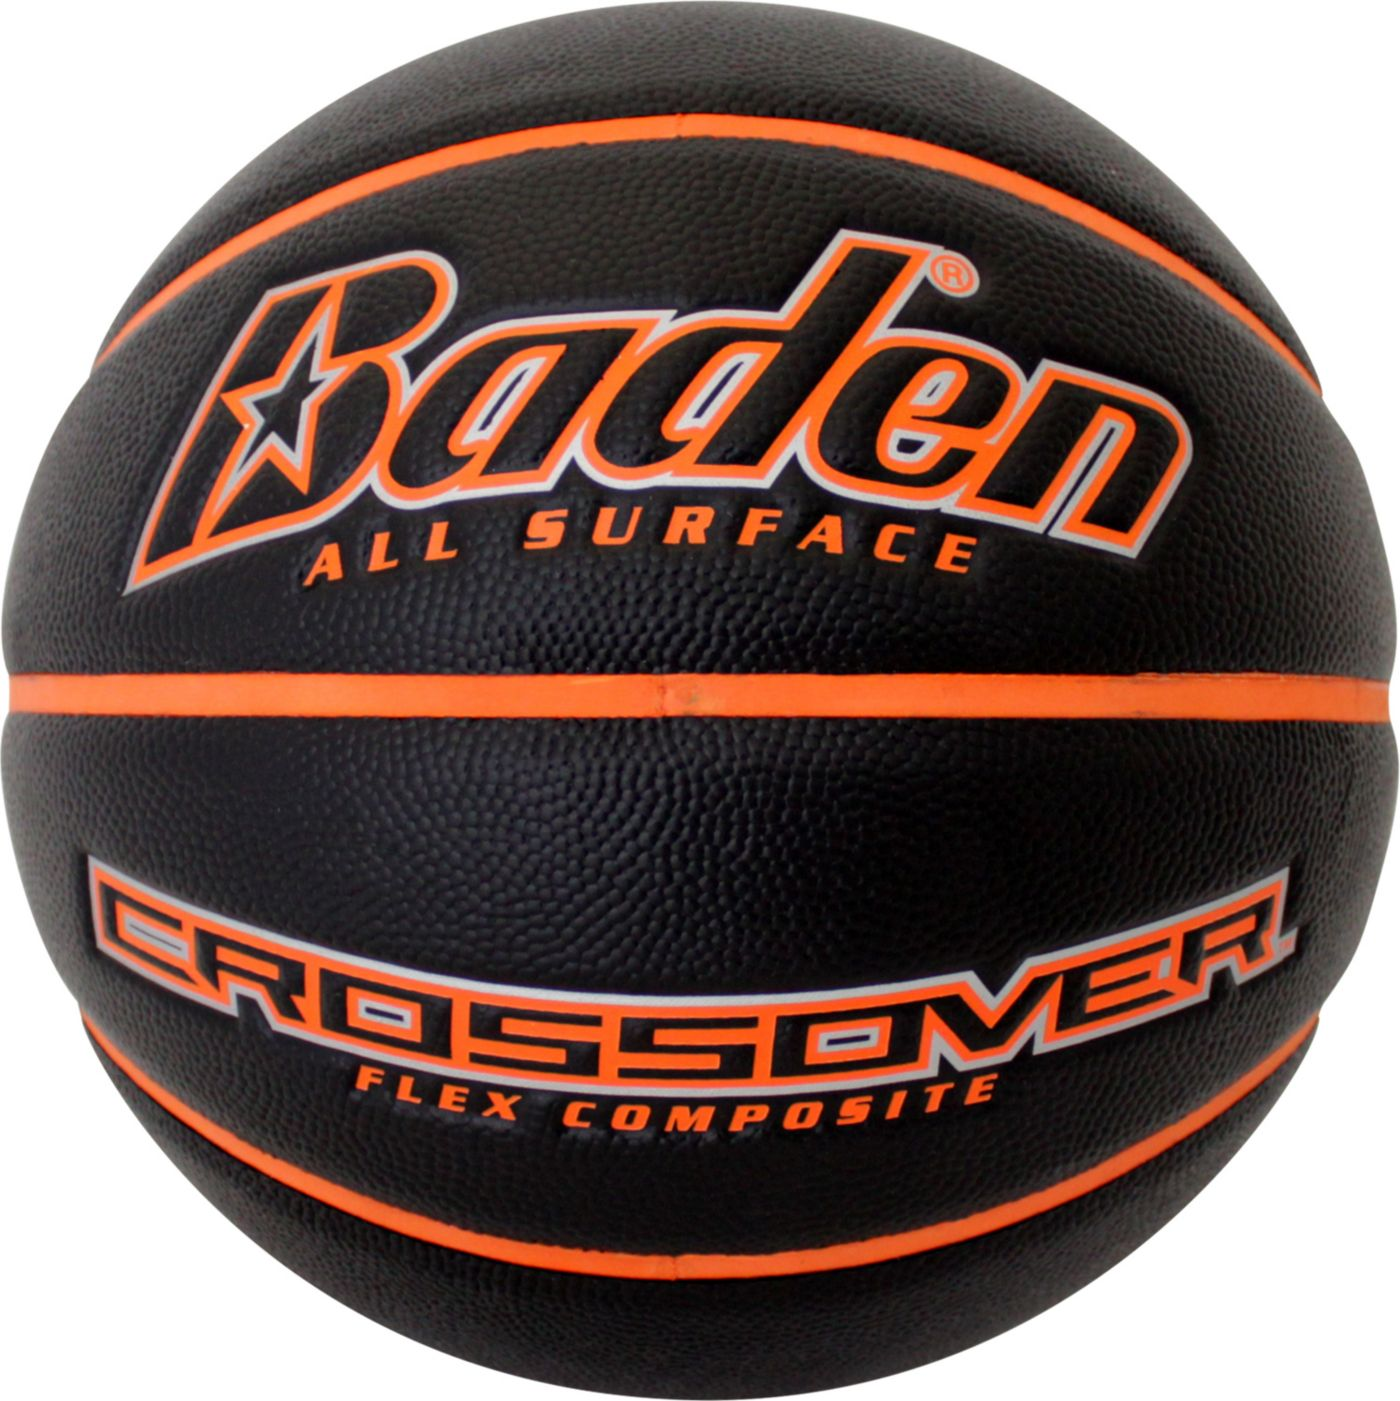 """Baden Crossover All-Surface Official Basketball (29.5"""")"""